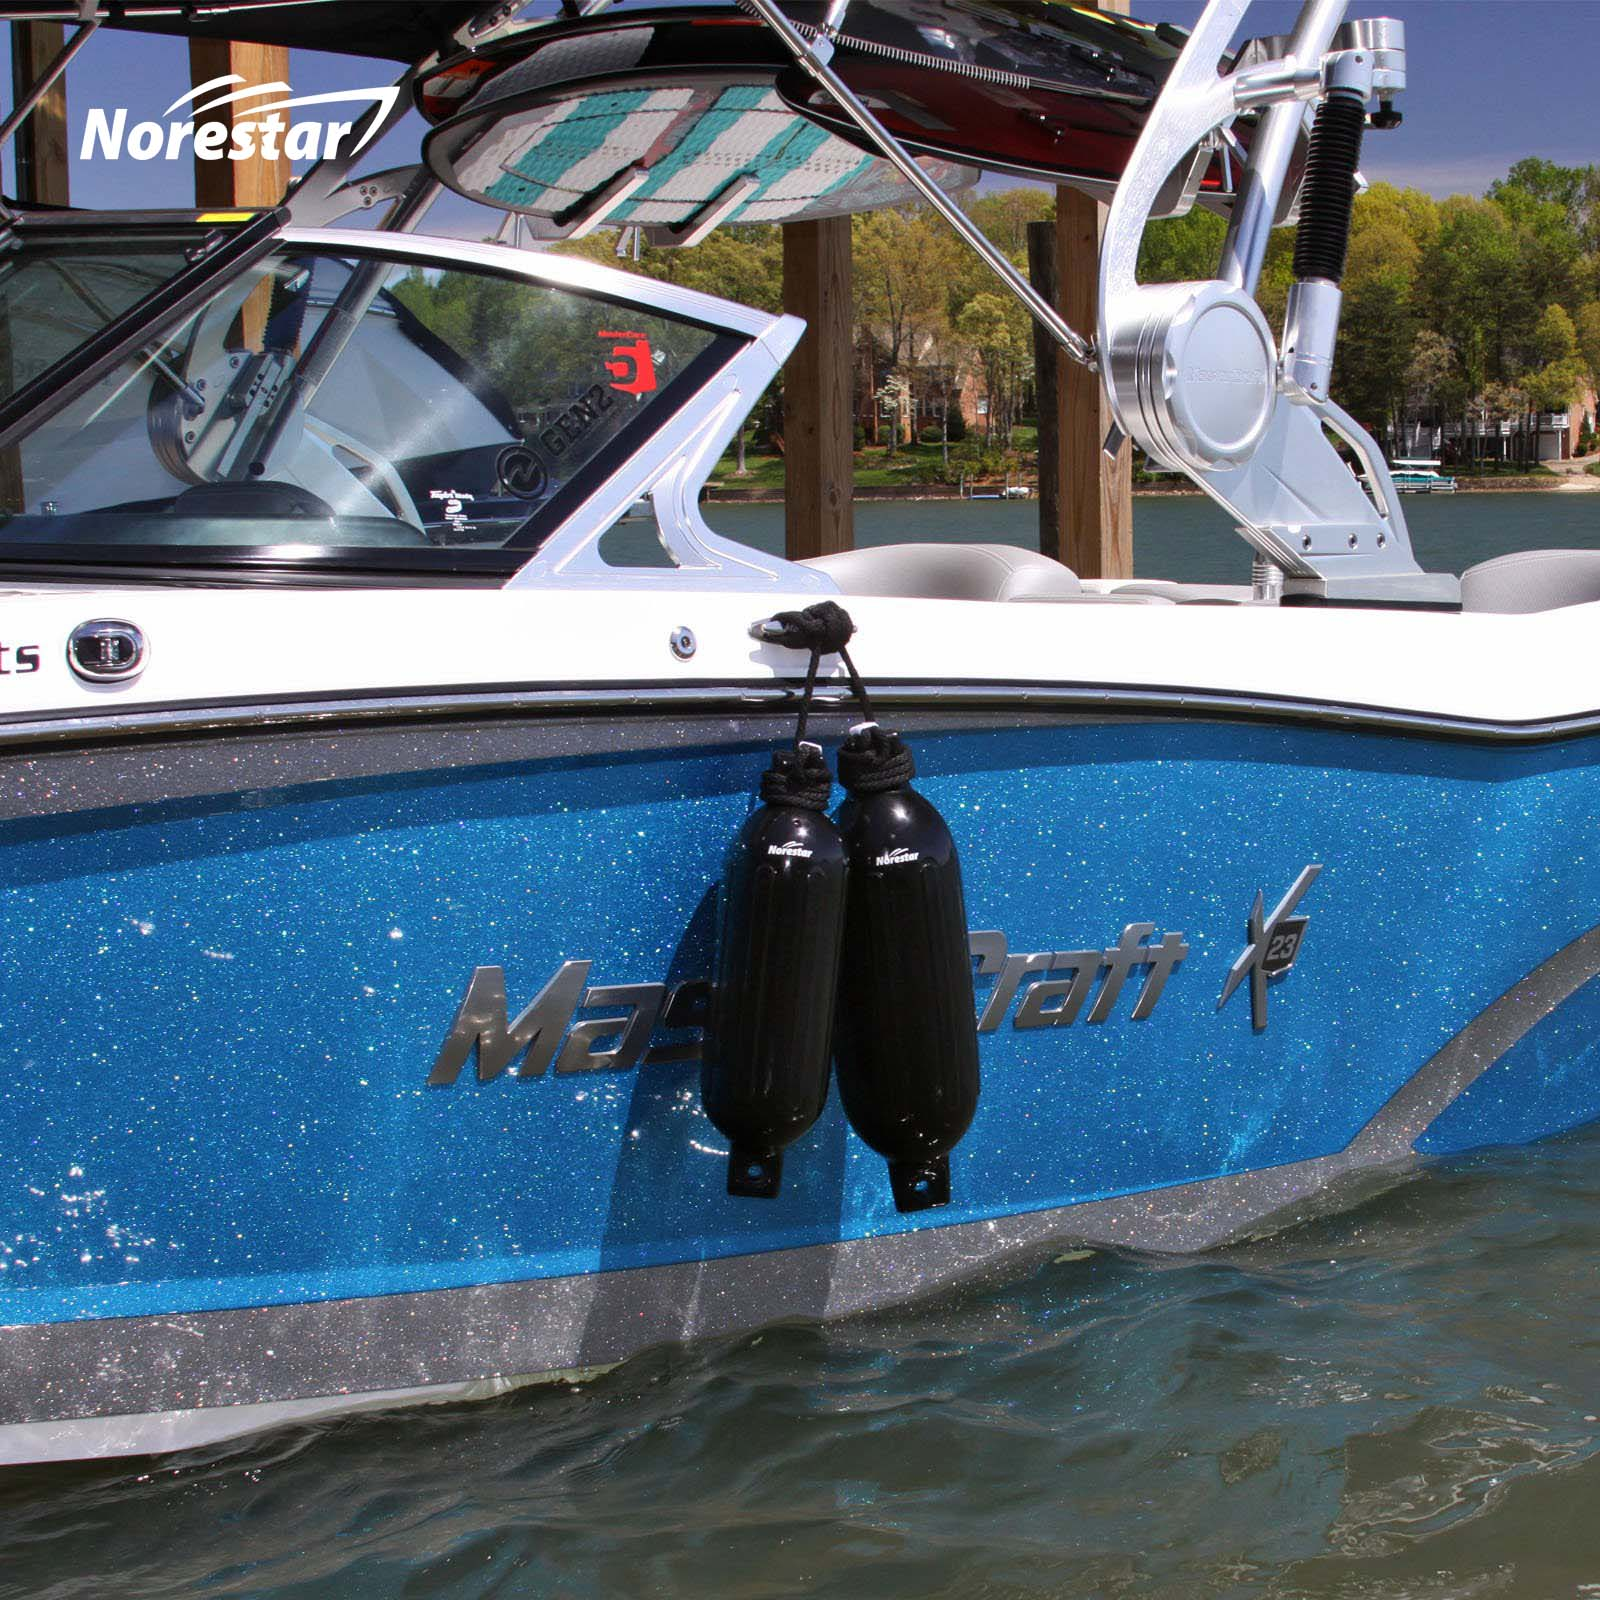 Norestar Ribbed Fenders On Boat